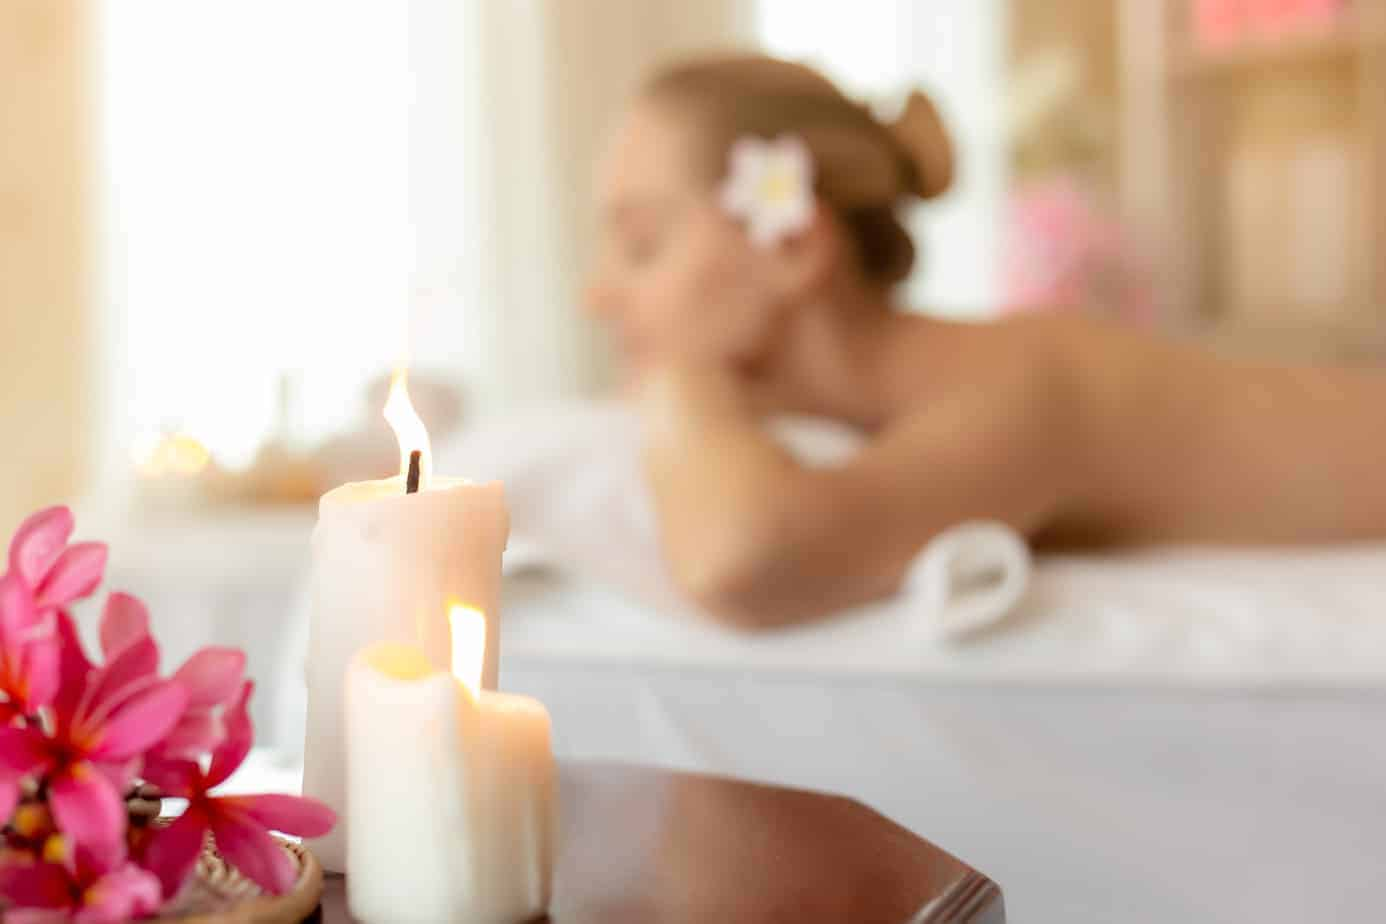 best spa getaways in new england header image - woman lying on massage table with lit candles in foreground